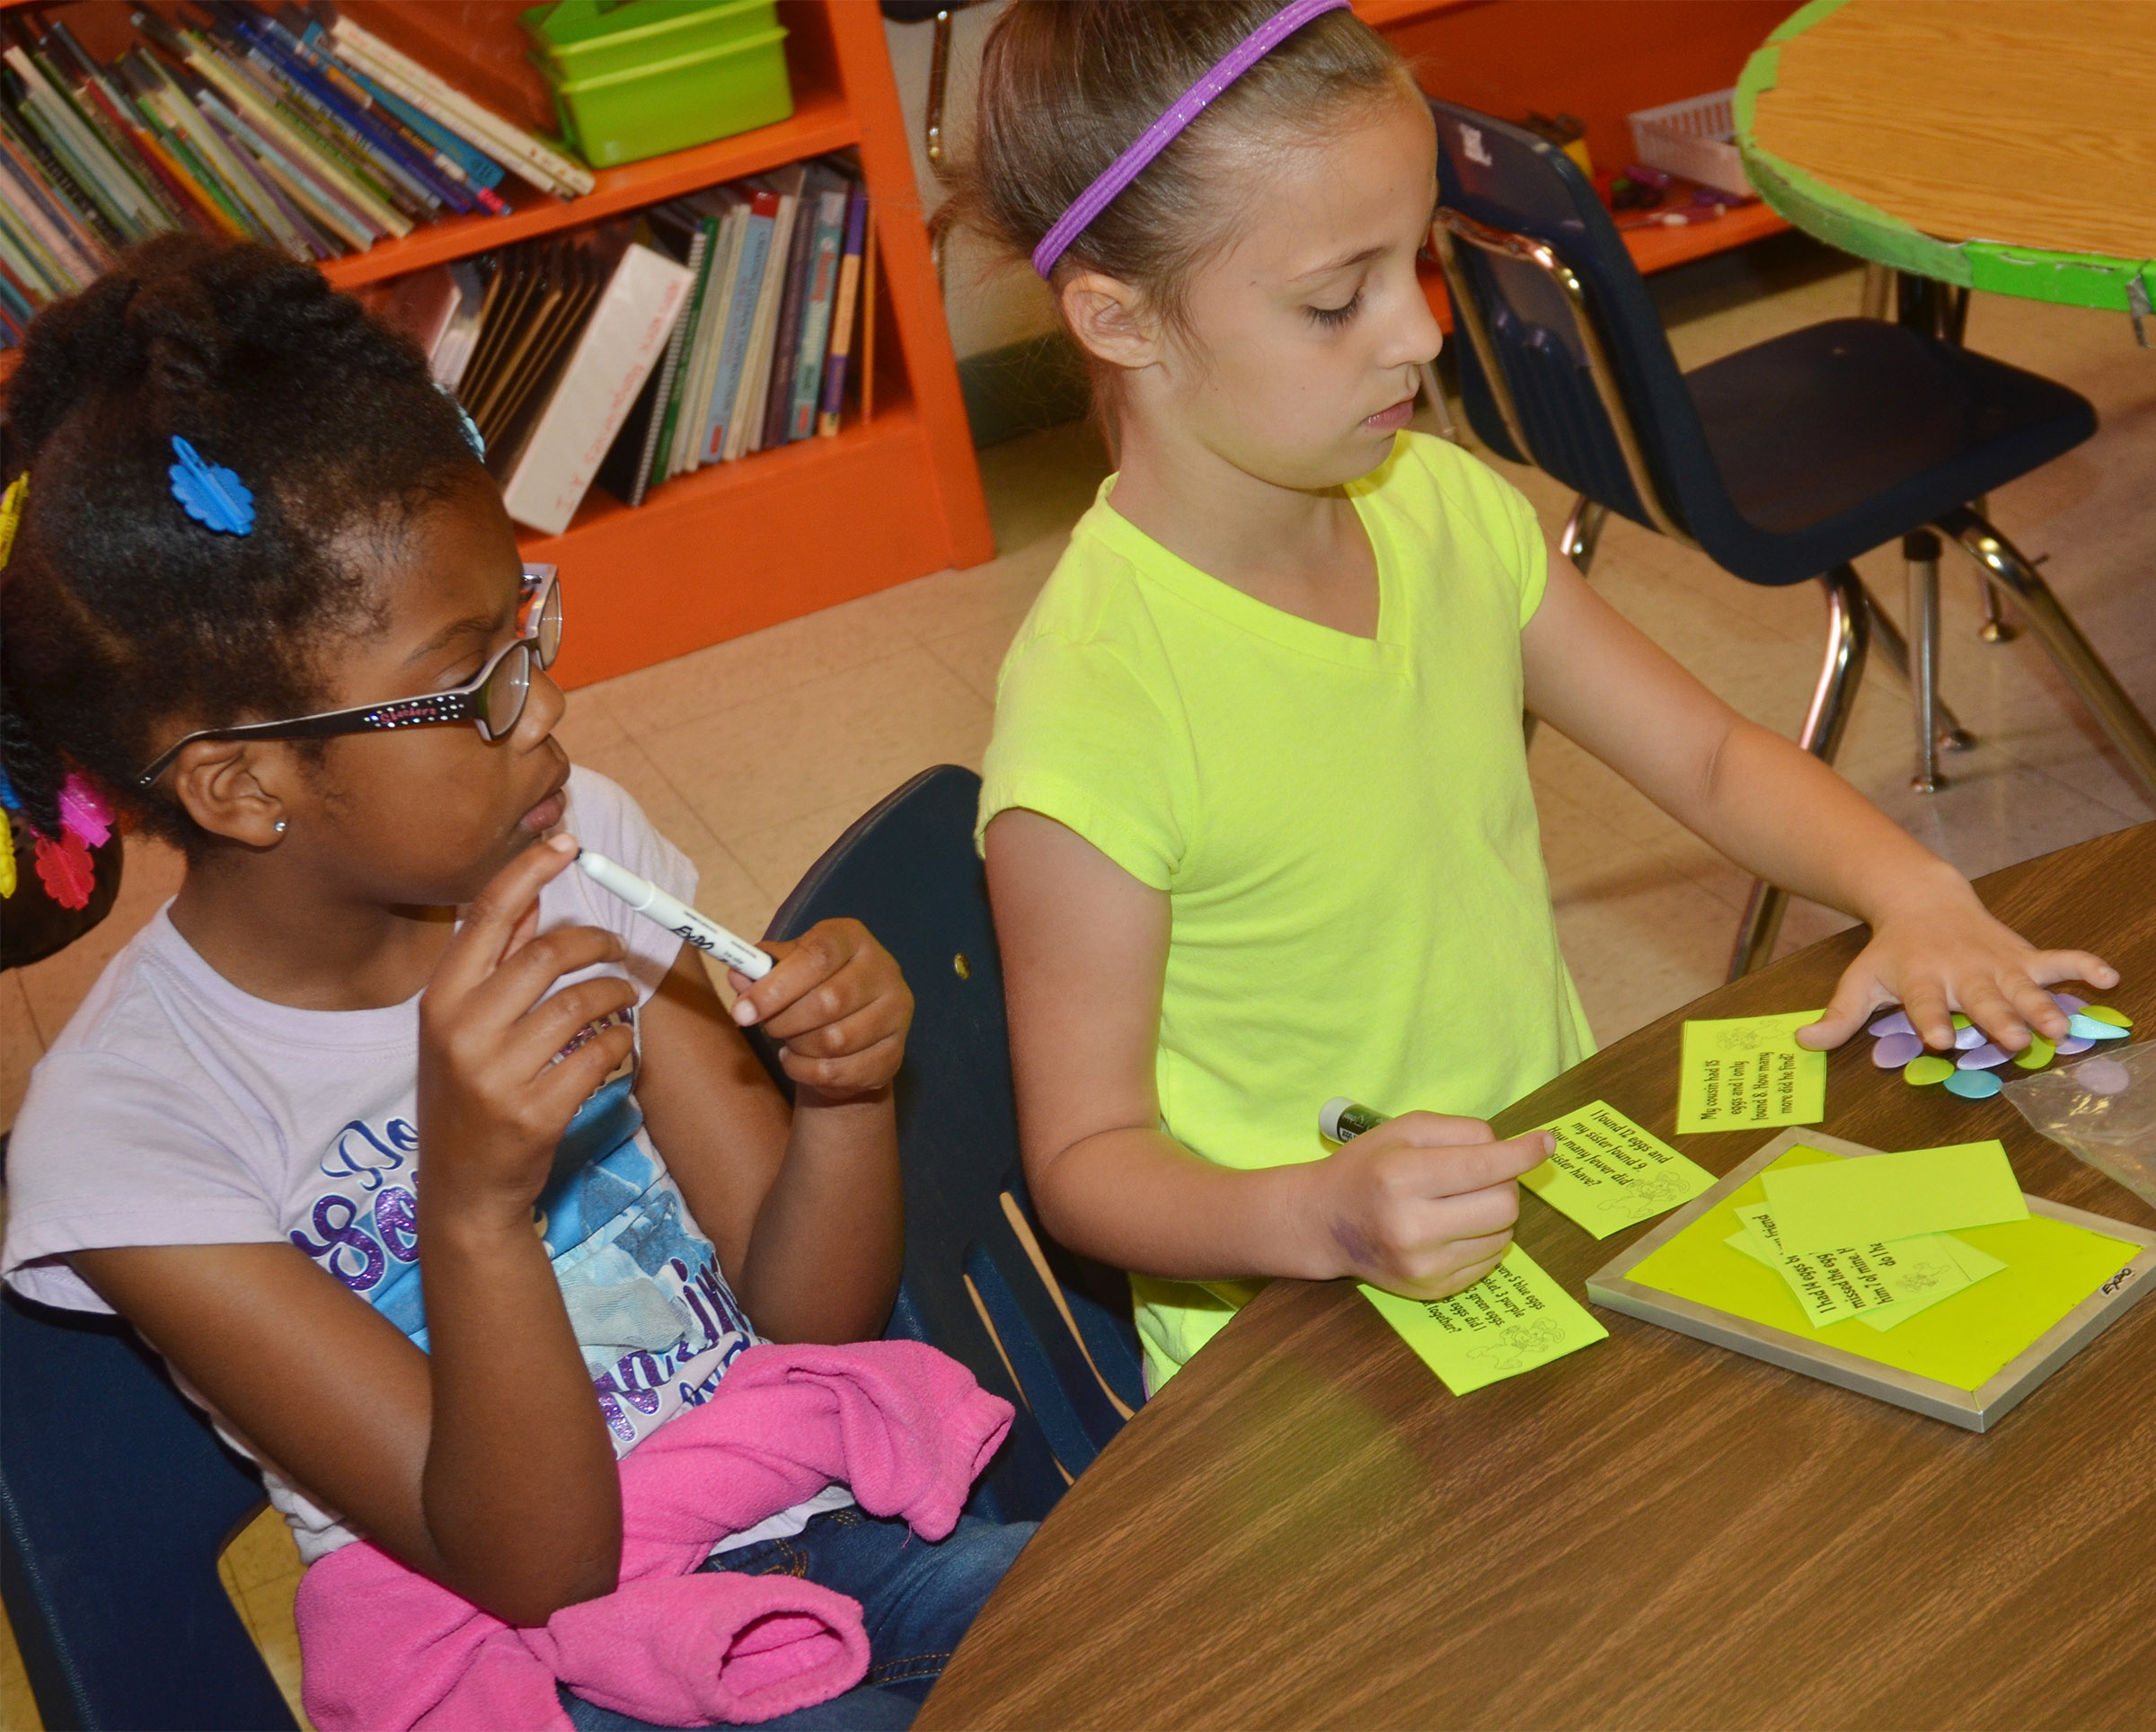 CES first-graders Willow Griffin, at left, and Lillian Martin work together to solve a math word problem.